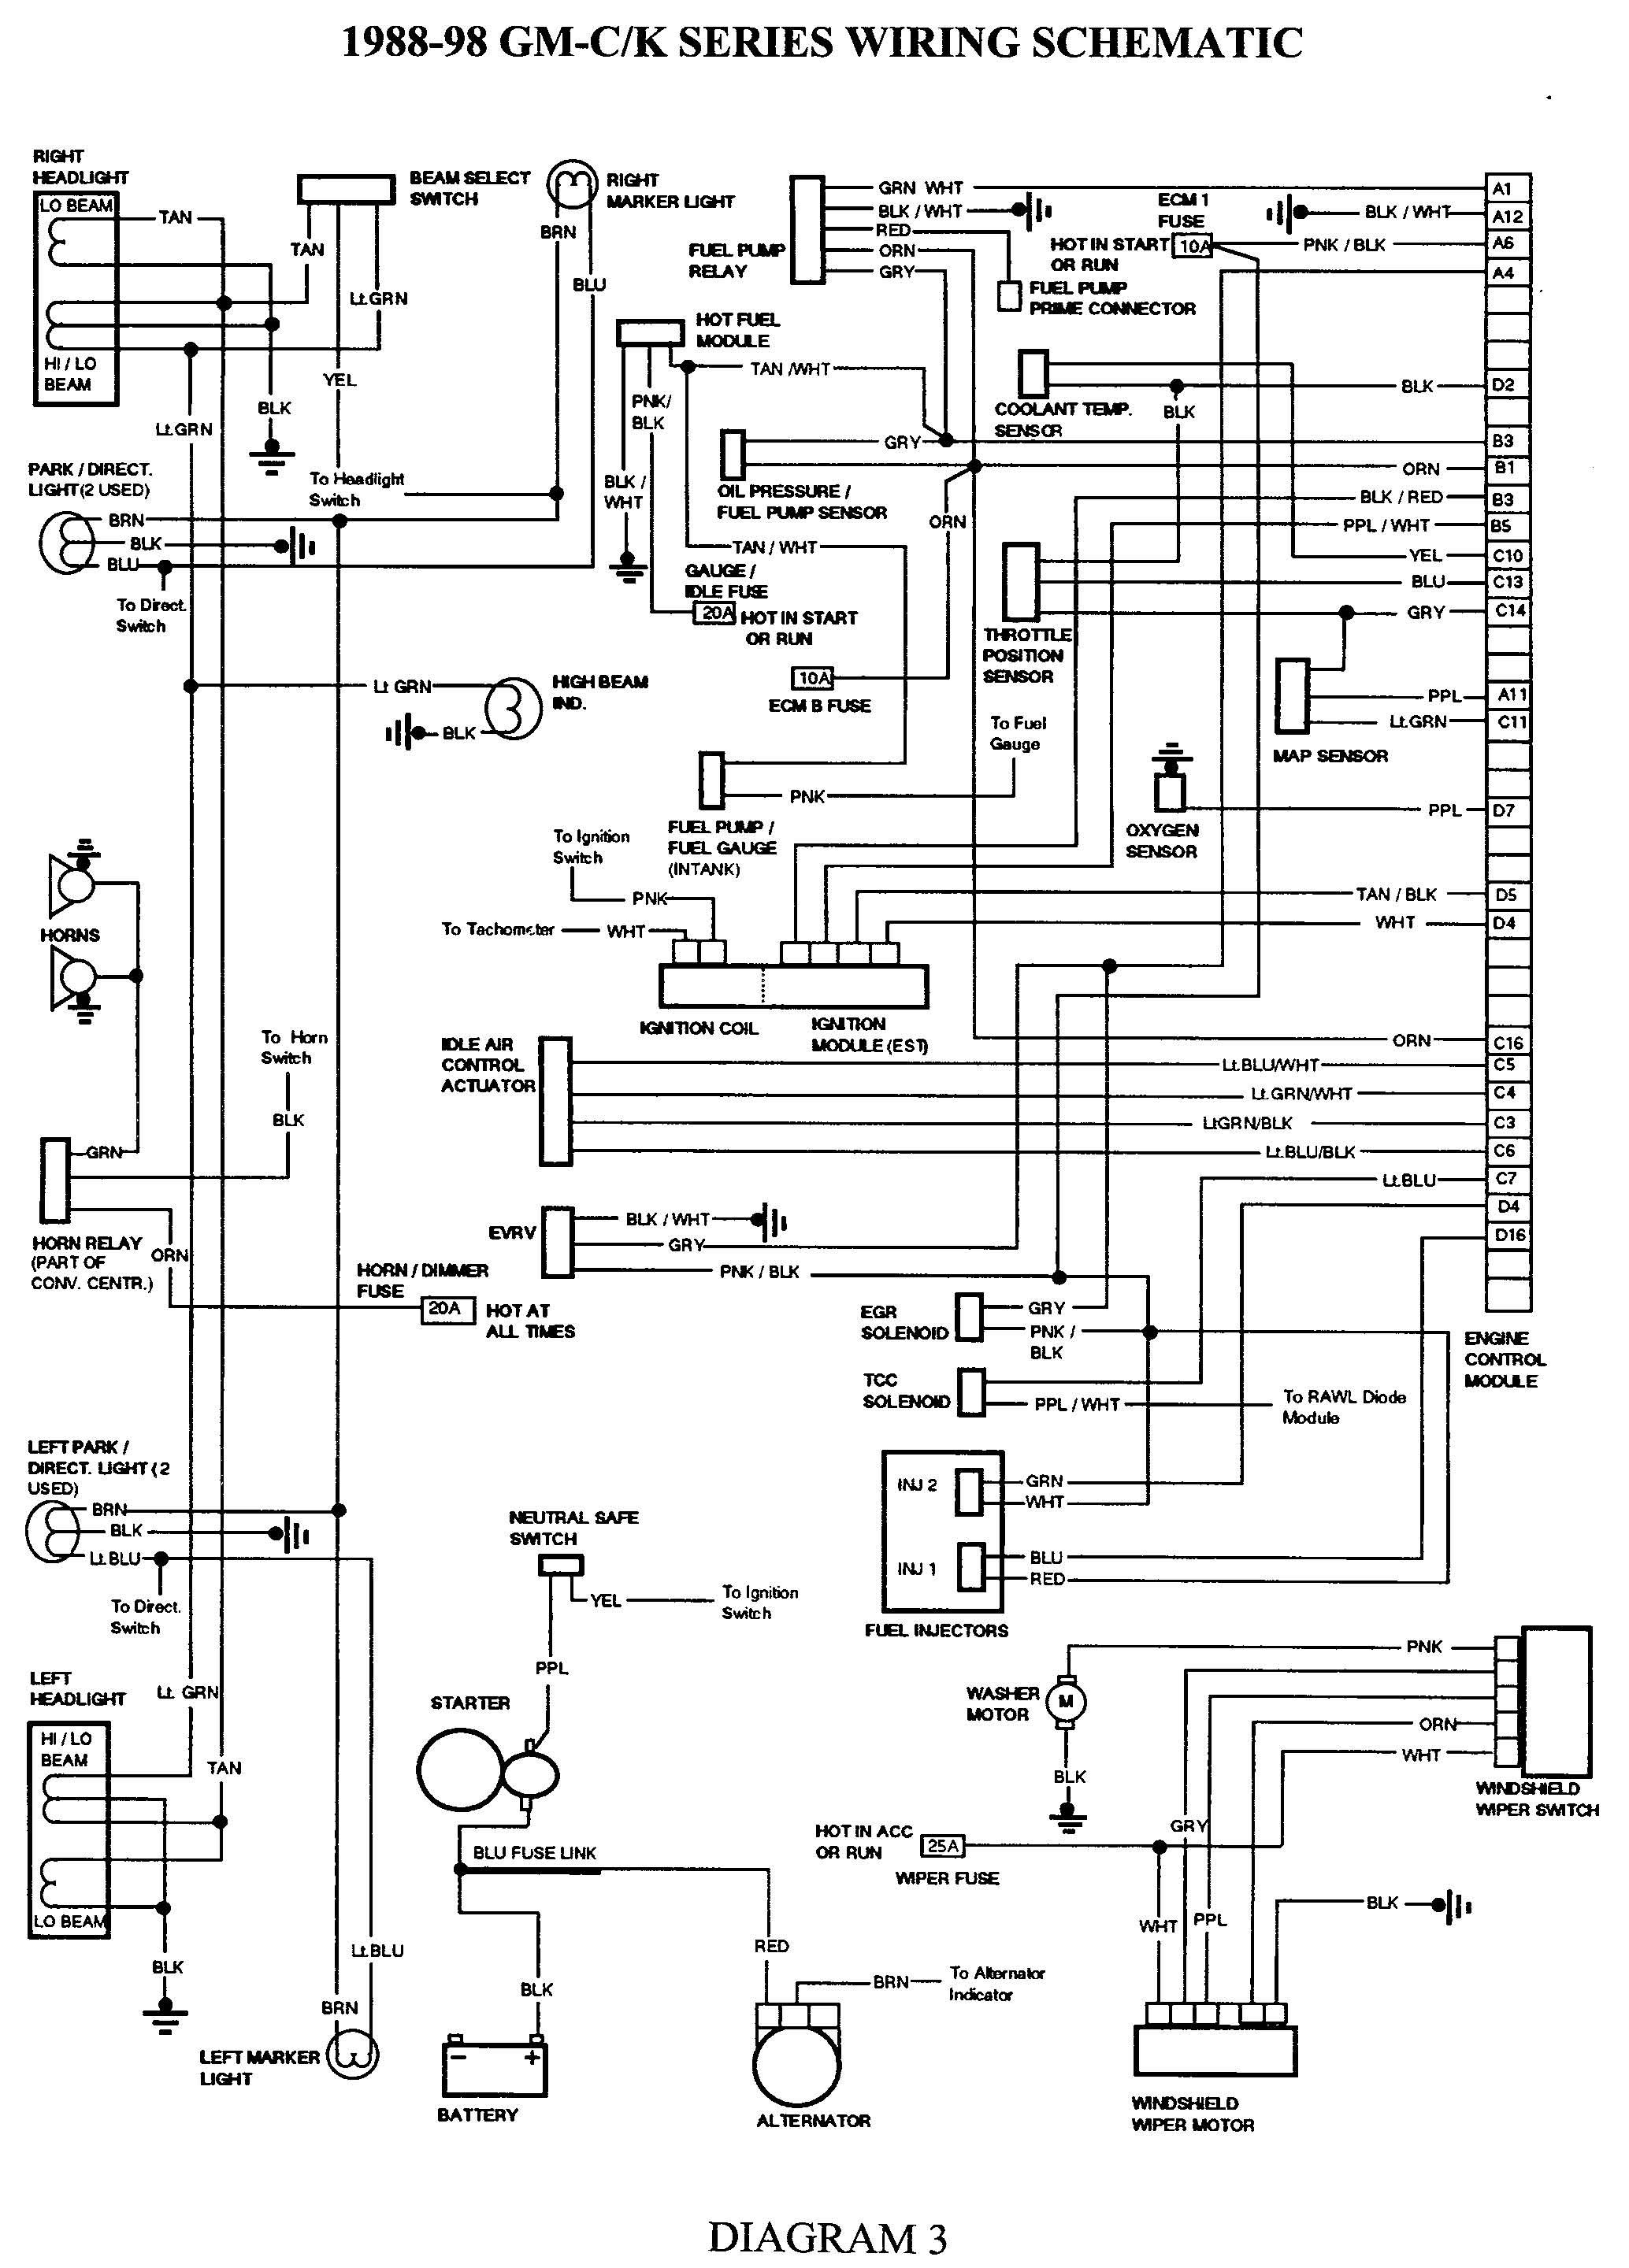 gmc truck wiring diagrams on gm wiring harness diagram 88 98 kc 93 gmc truck fuse diagrams tbi wiring diagram 93 chevy c1500 truck [ 2068 x 2880 Pixel ]